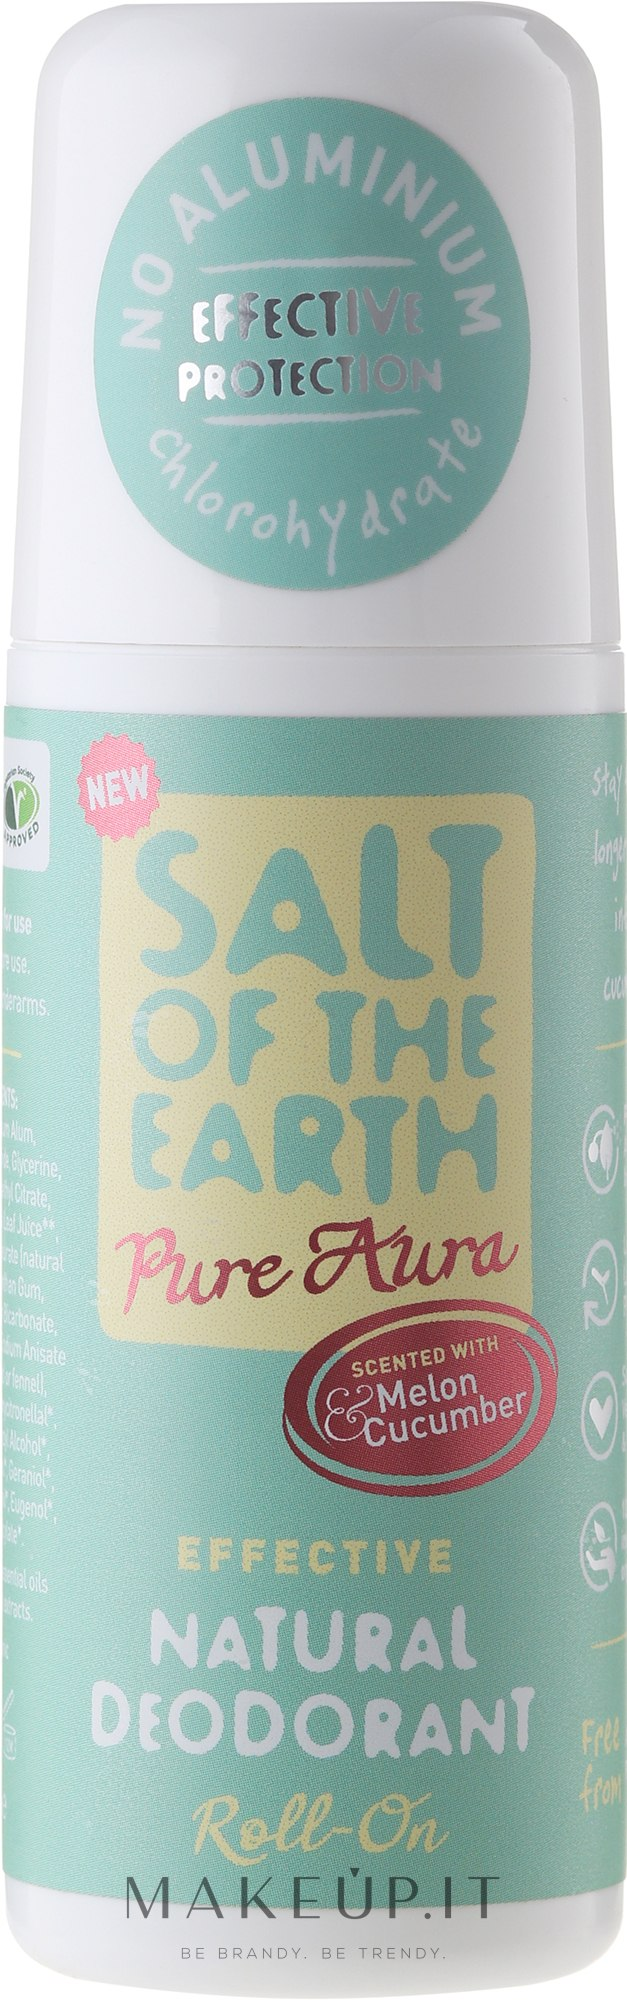 Deodorante roll-on naturale - Salt of the Earth Melon & Cucumber Natural Roll-On Deodorant — foto 75 ml